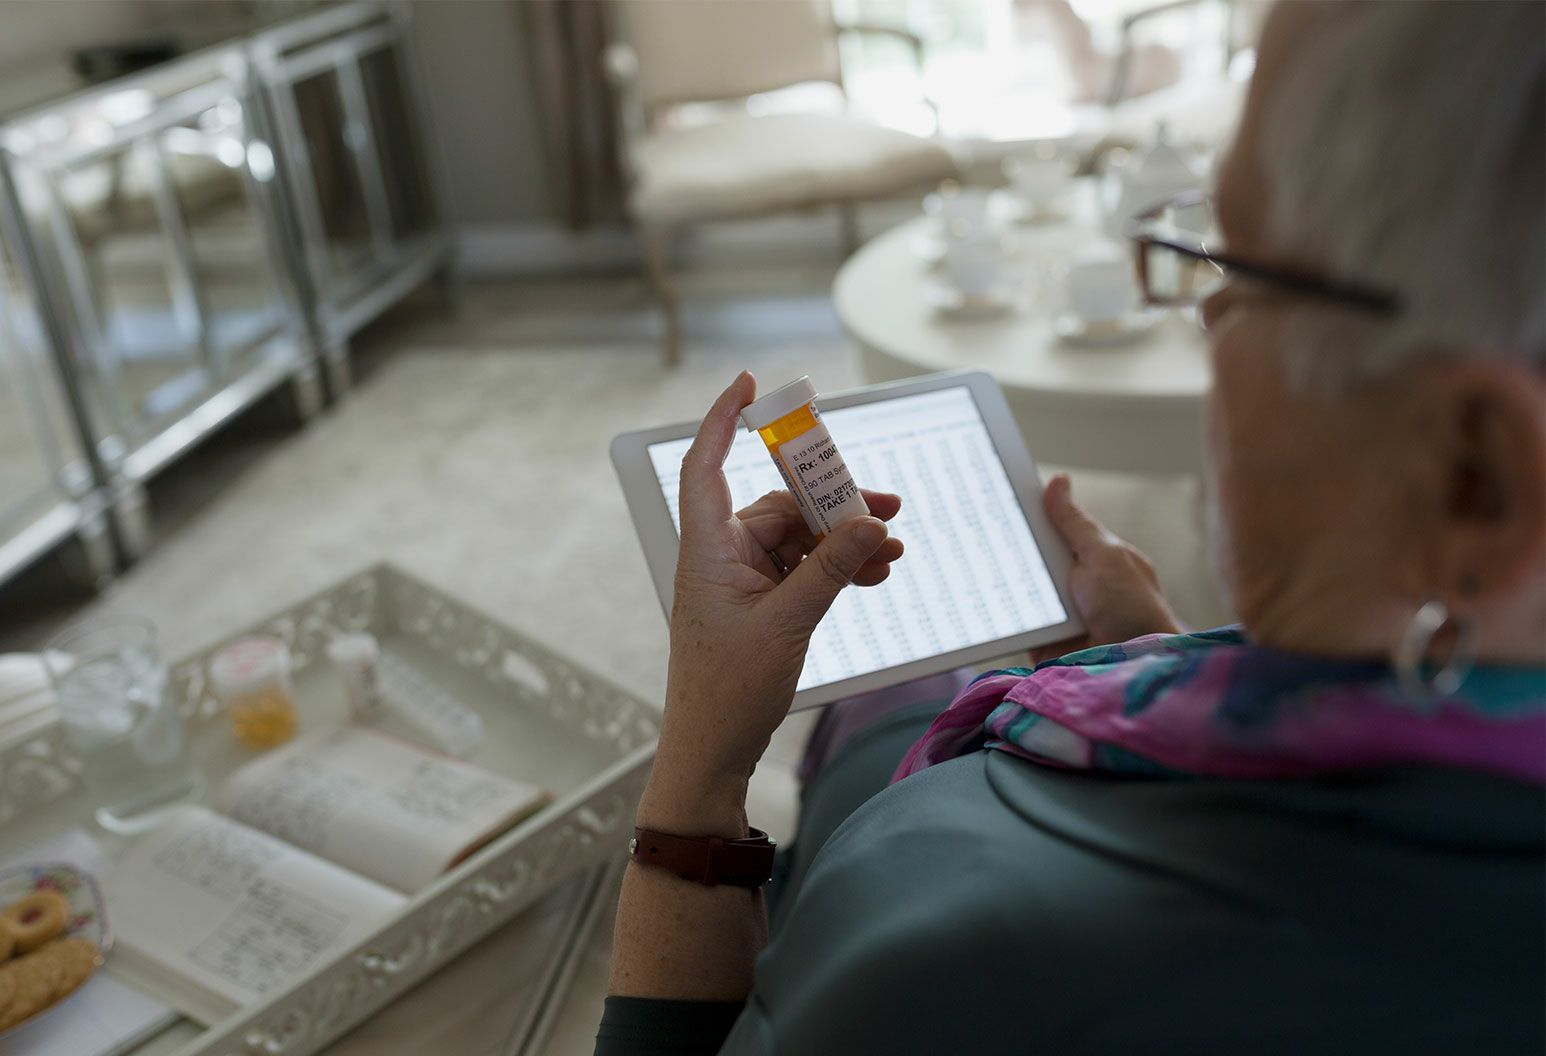 Senior woman with digital tablet checking prescription label.